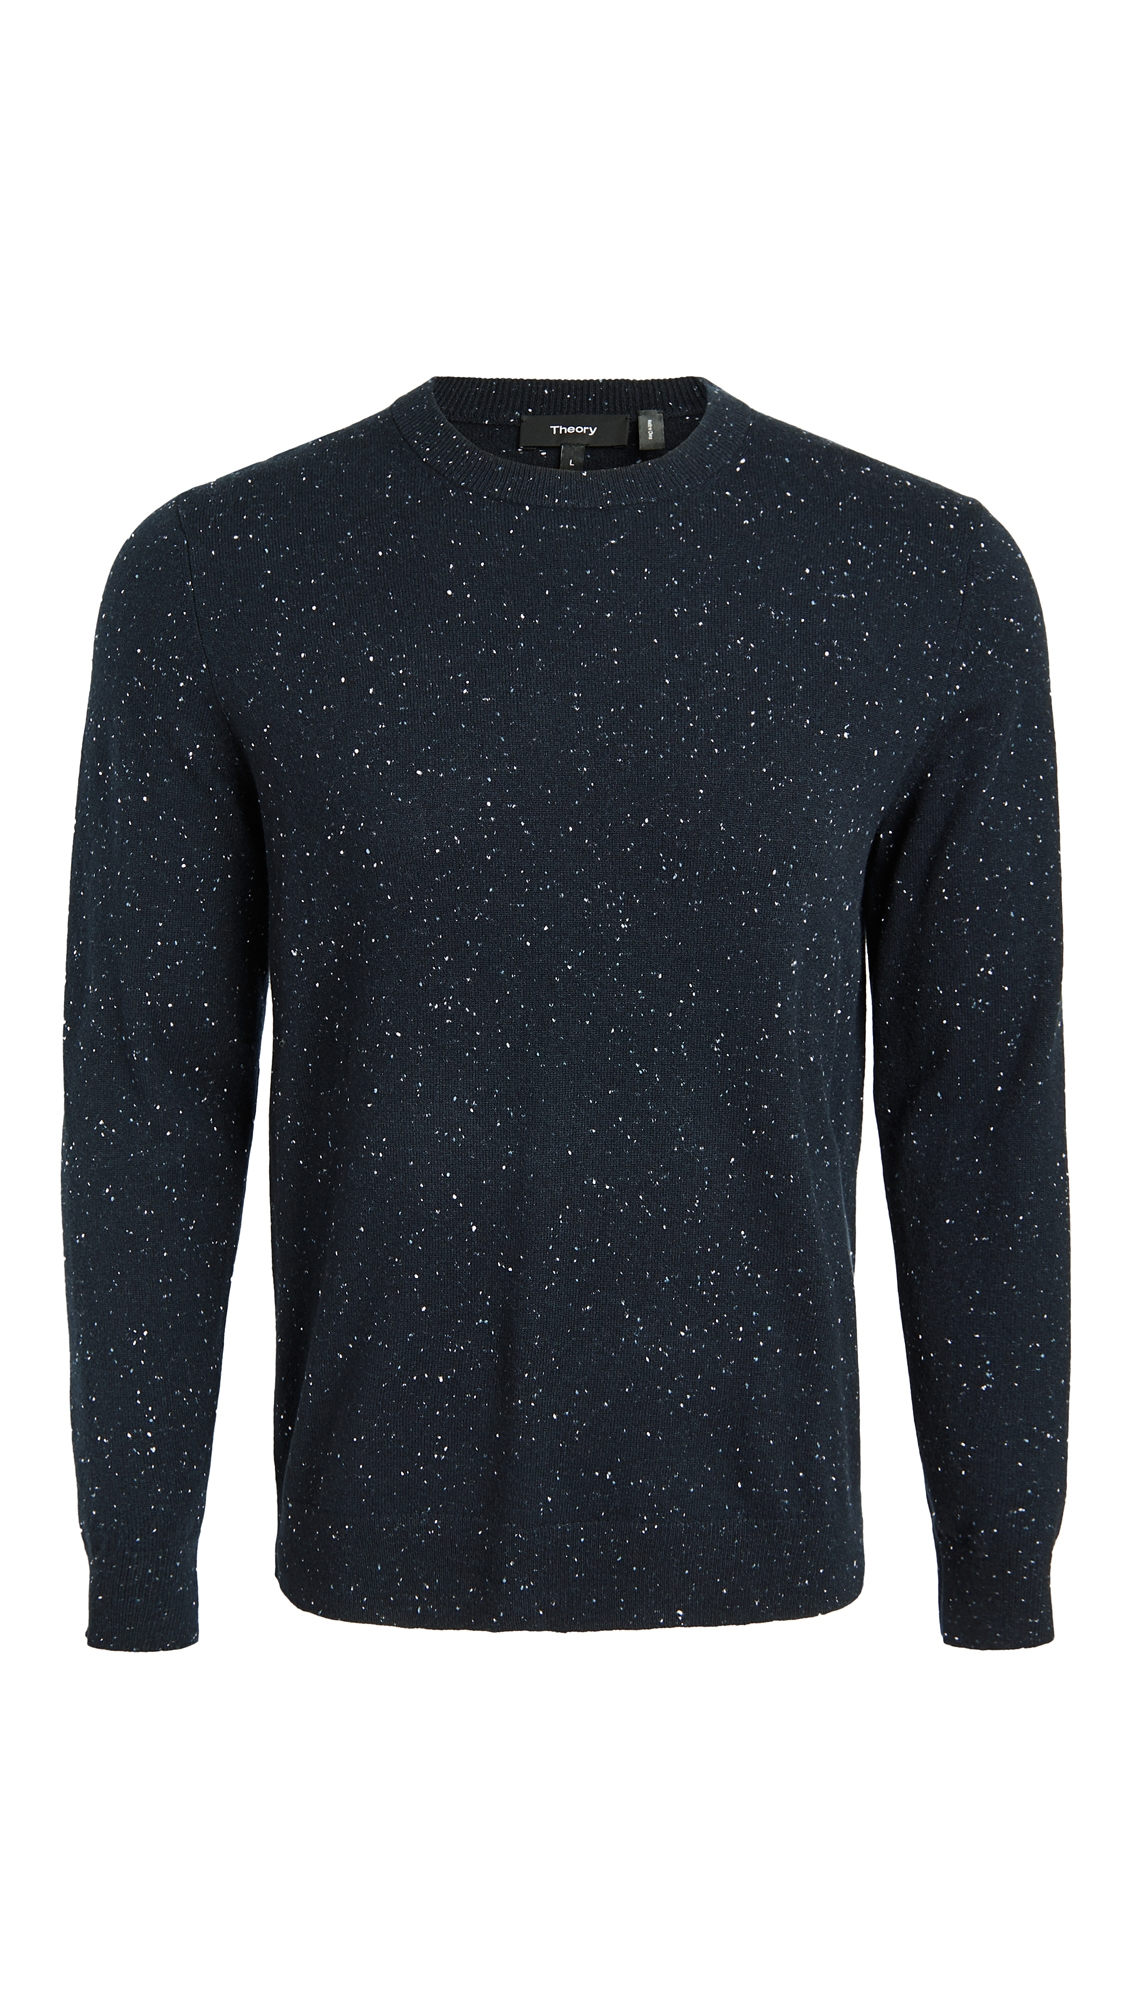 Theory Donegal Cashmere Crew Neck Sweater